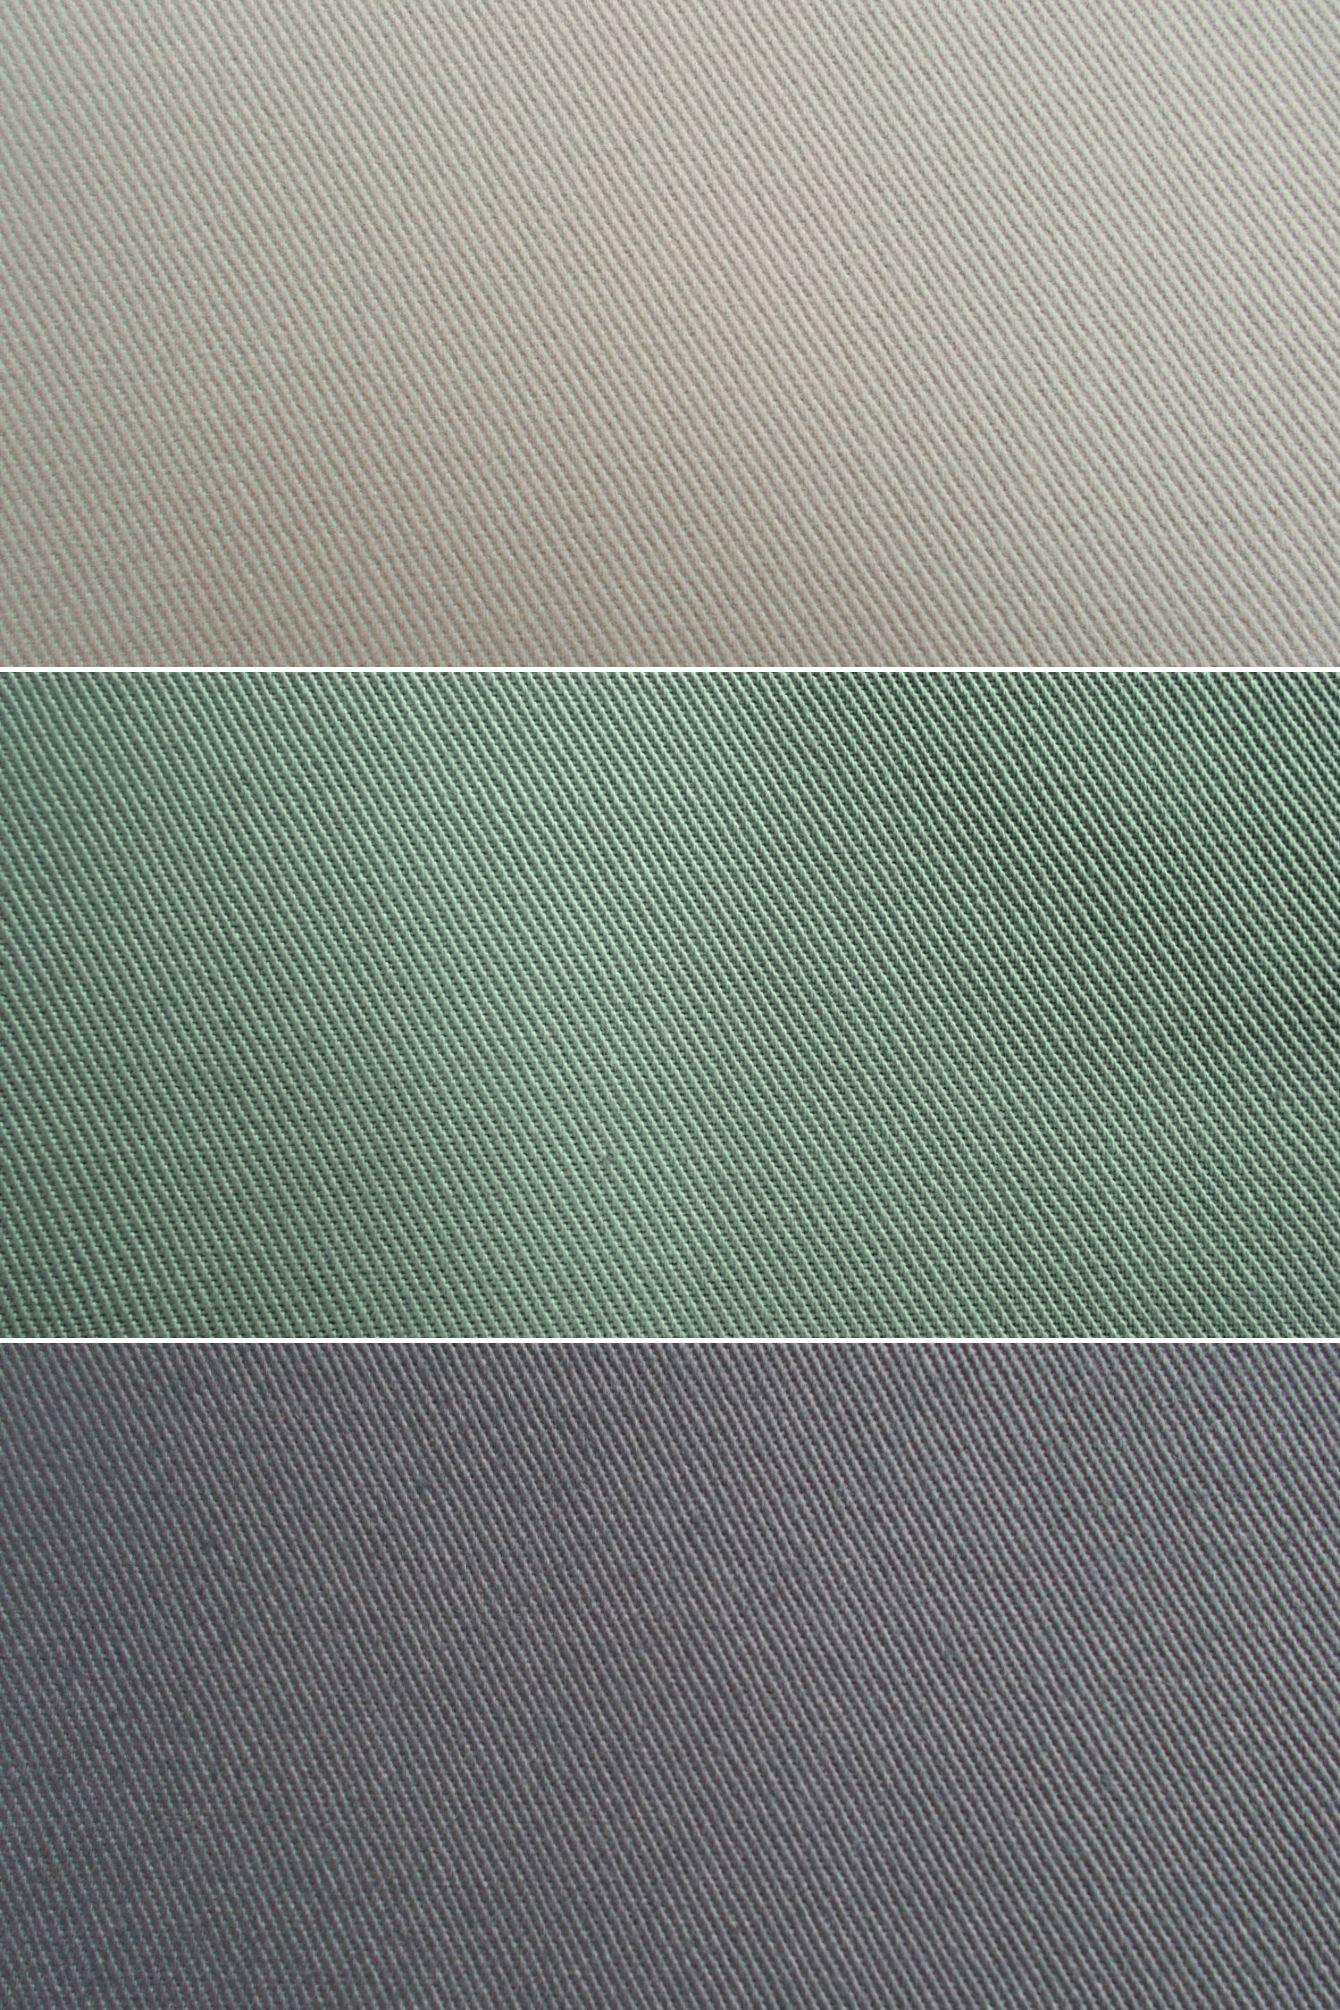 Chino cloth colors - khaki, olive and grey